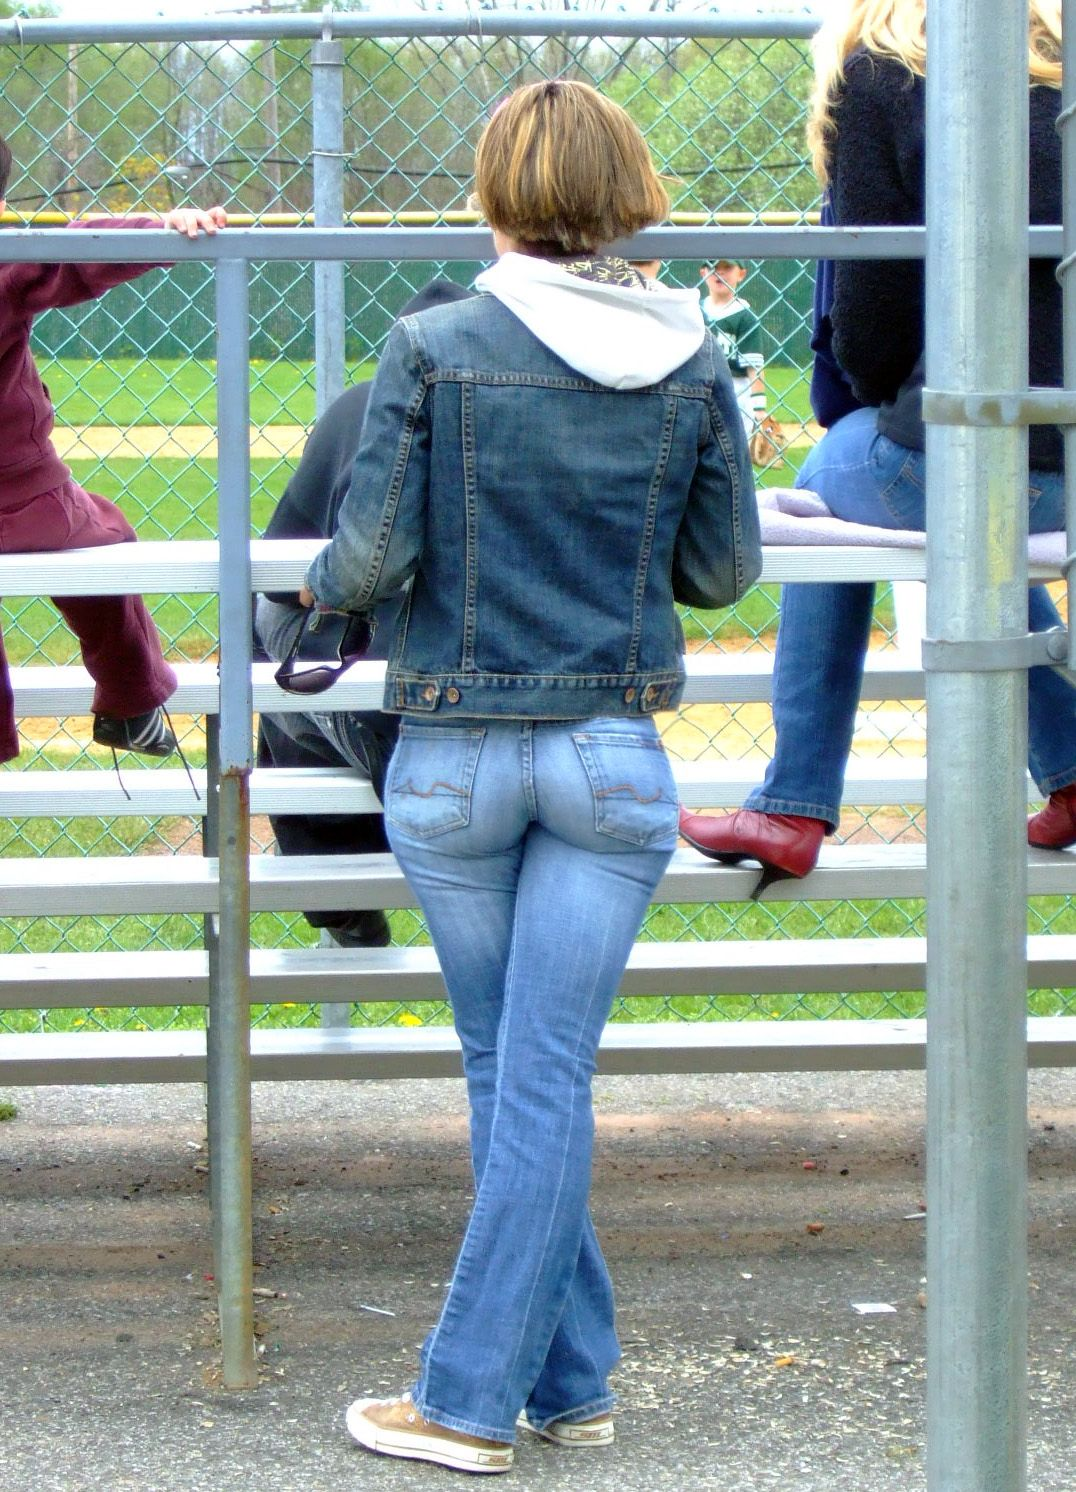 pinkay on clothes-tight jeans #1 | pinterest | super skinny